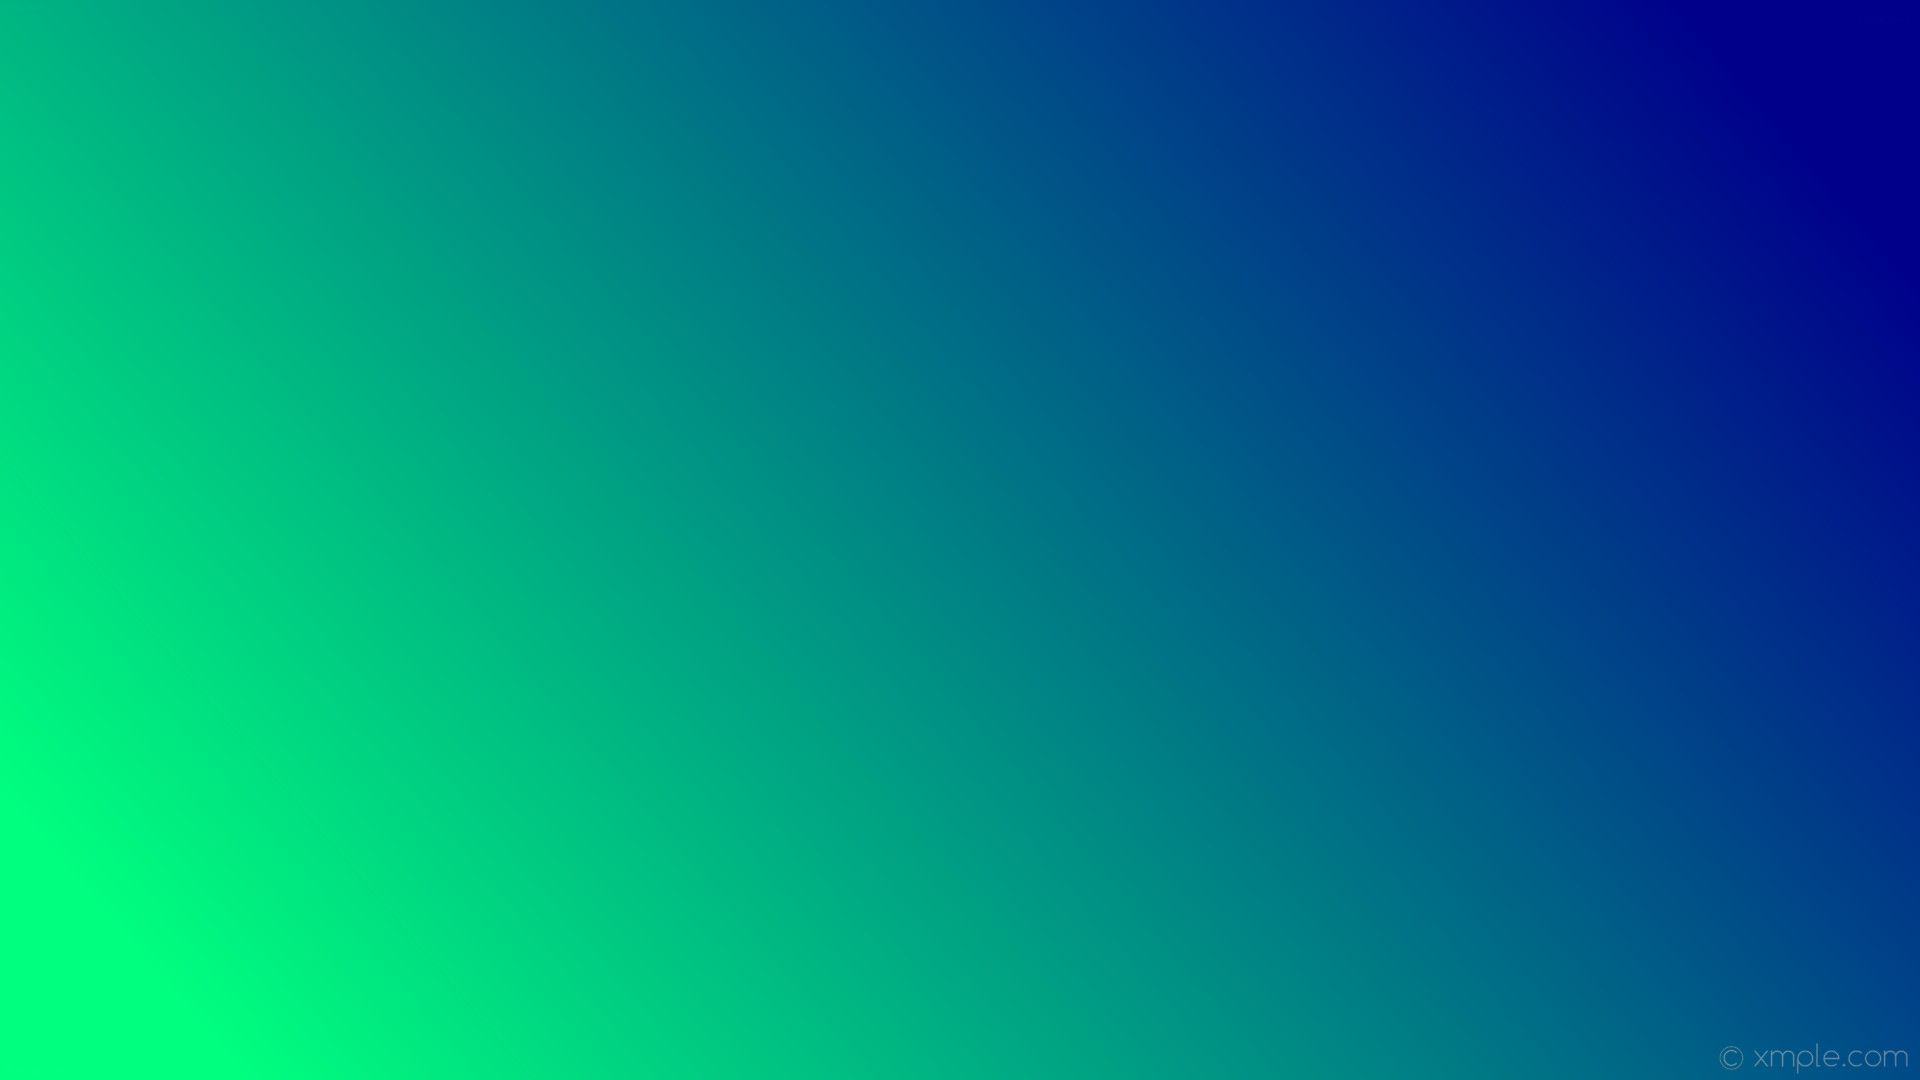 Res 1920x1080, wallpaper linear gradient green blue